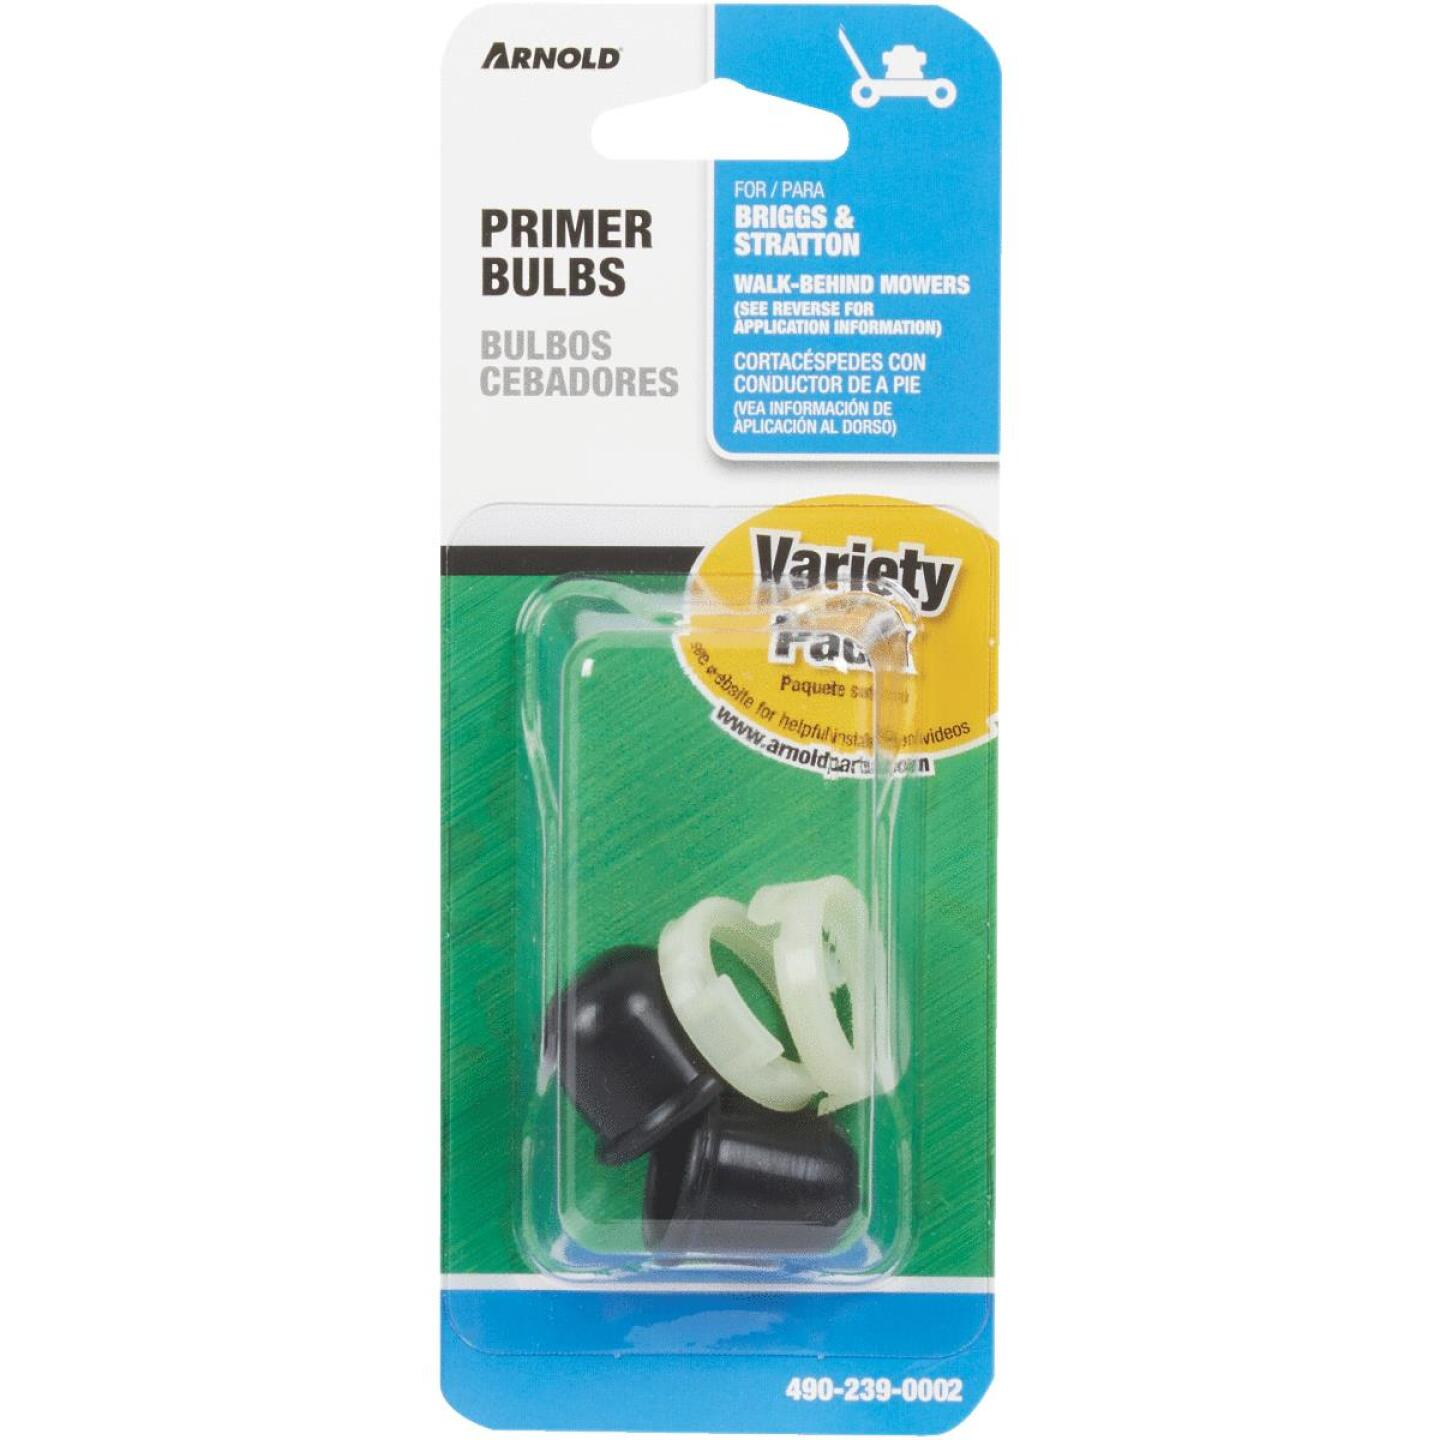 Arnold Lawn Mower Primer Bulb (2 Count) Image 2